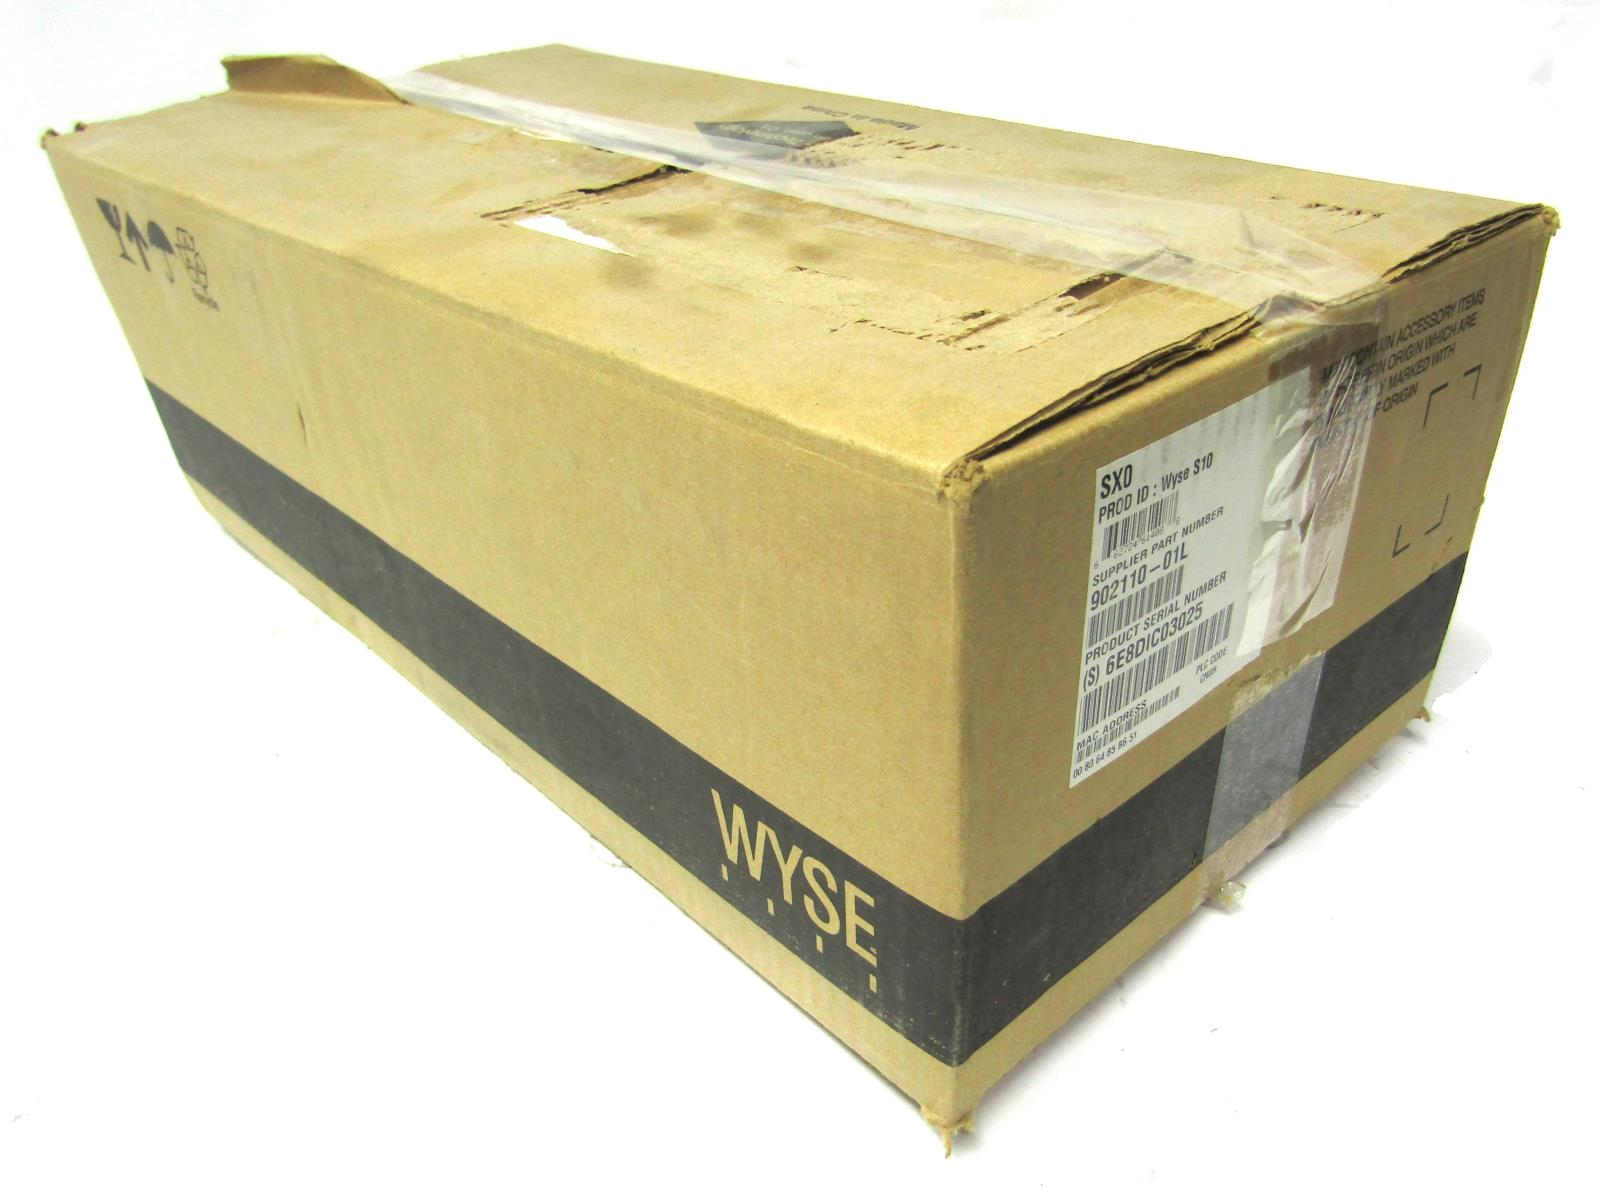 New - Open Box Dell Wyse S10 Thin Client | Geode GX 366MHz